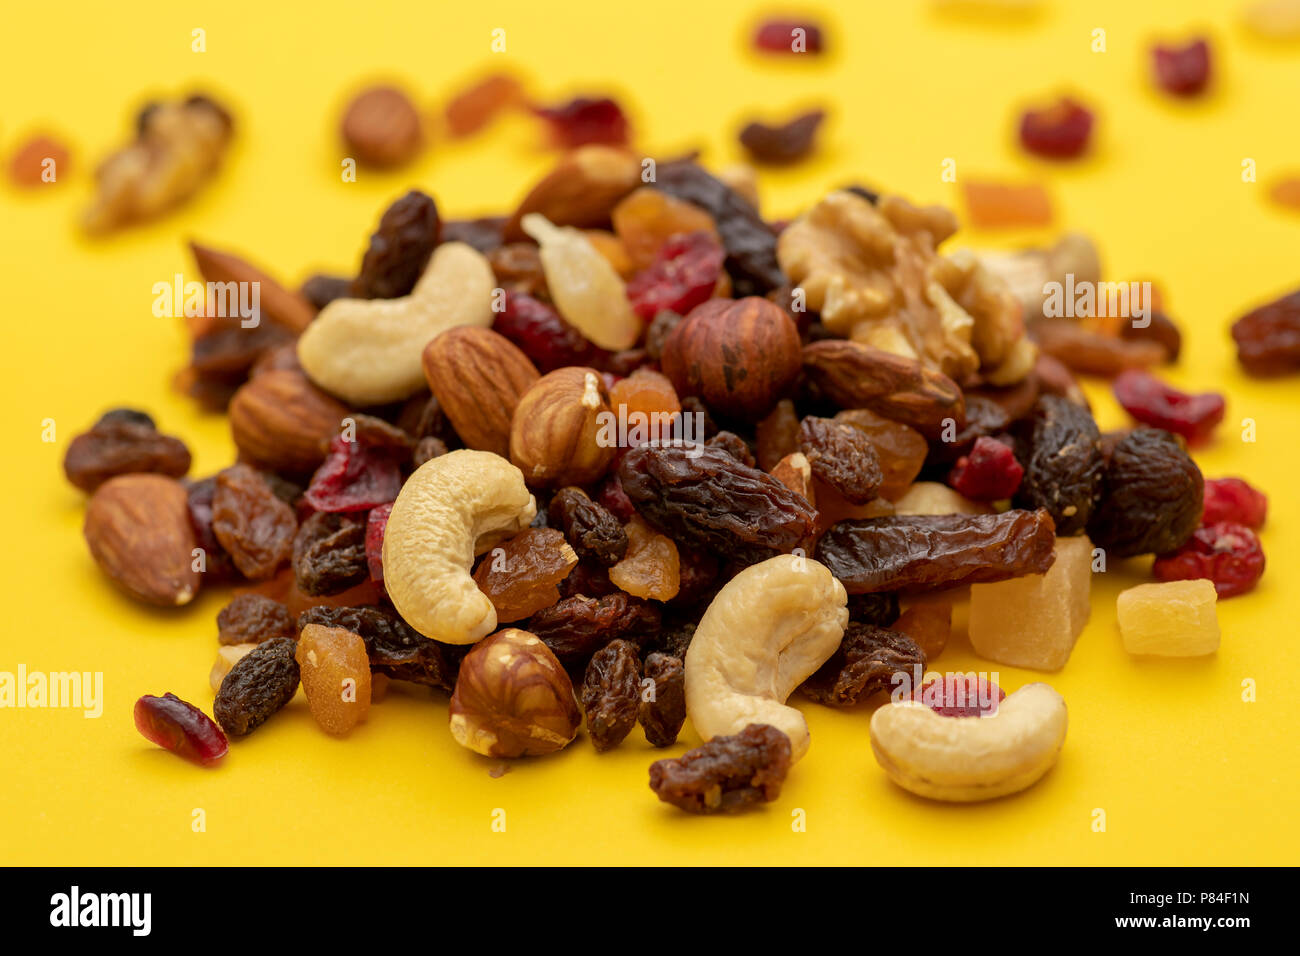 Close up of mix of dried fruits and nuts on a yellow background - Stock Image